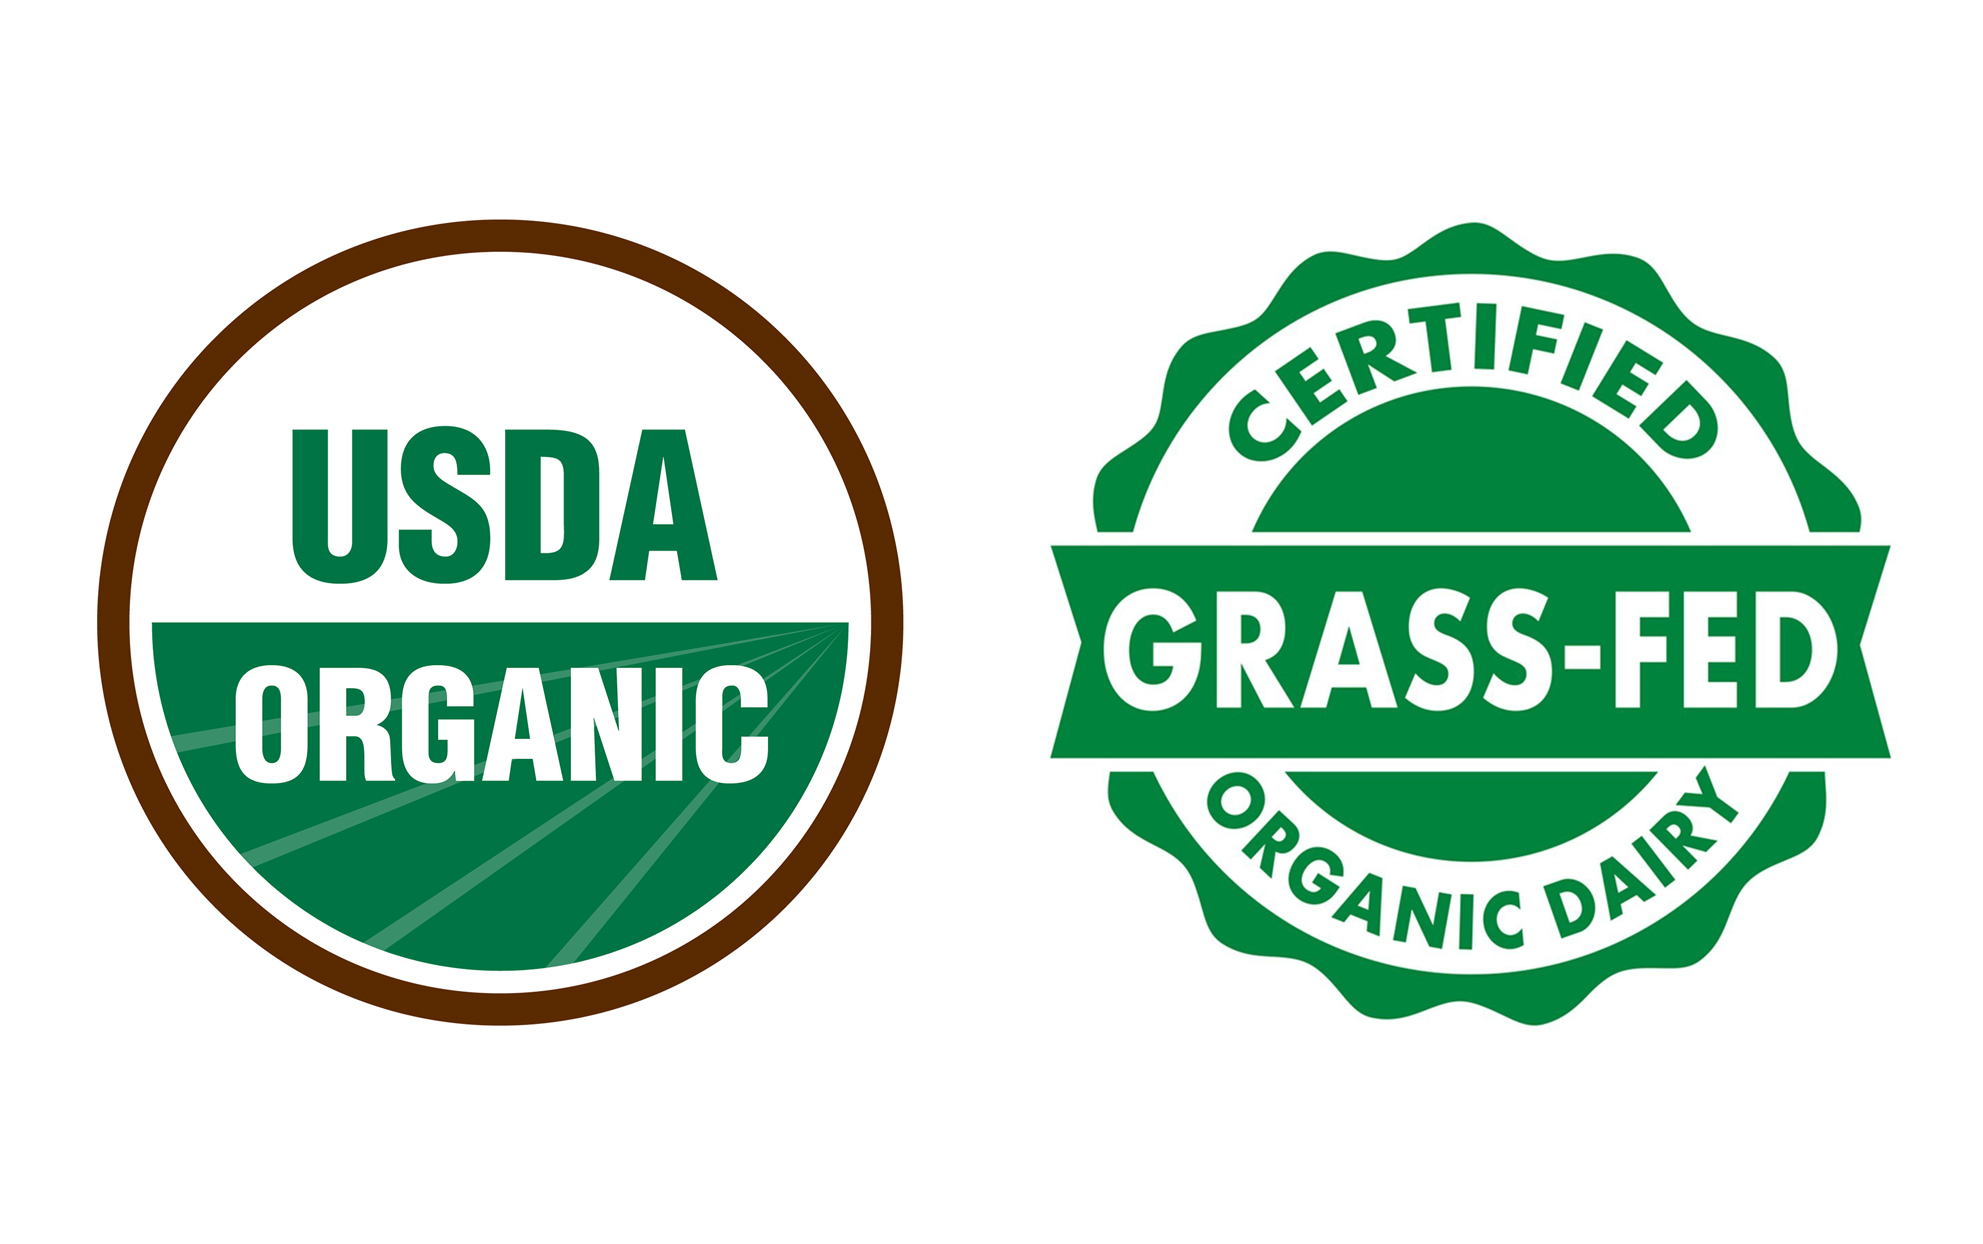 USDA Organic and Grass-Fed logos on a white background